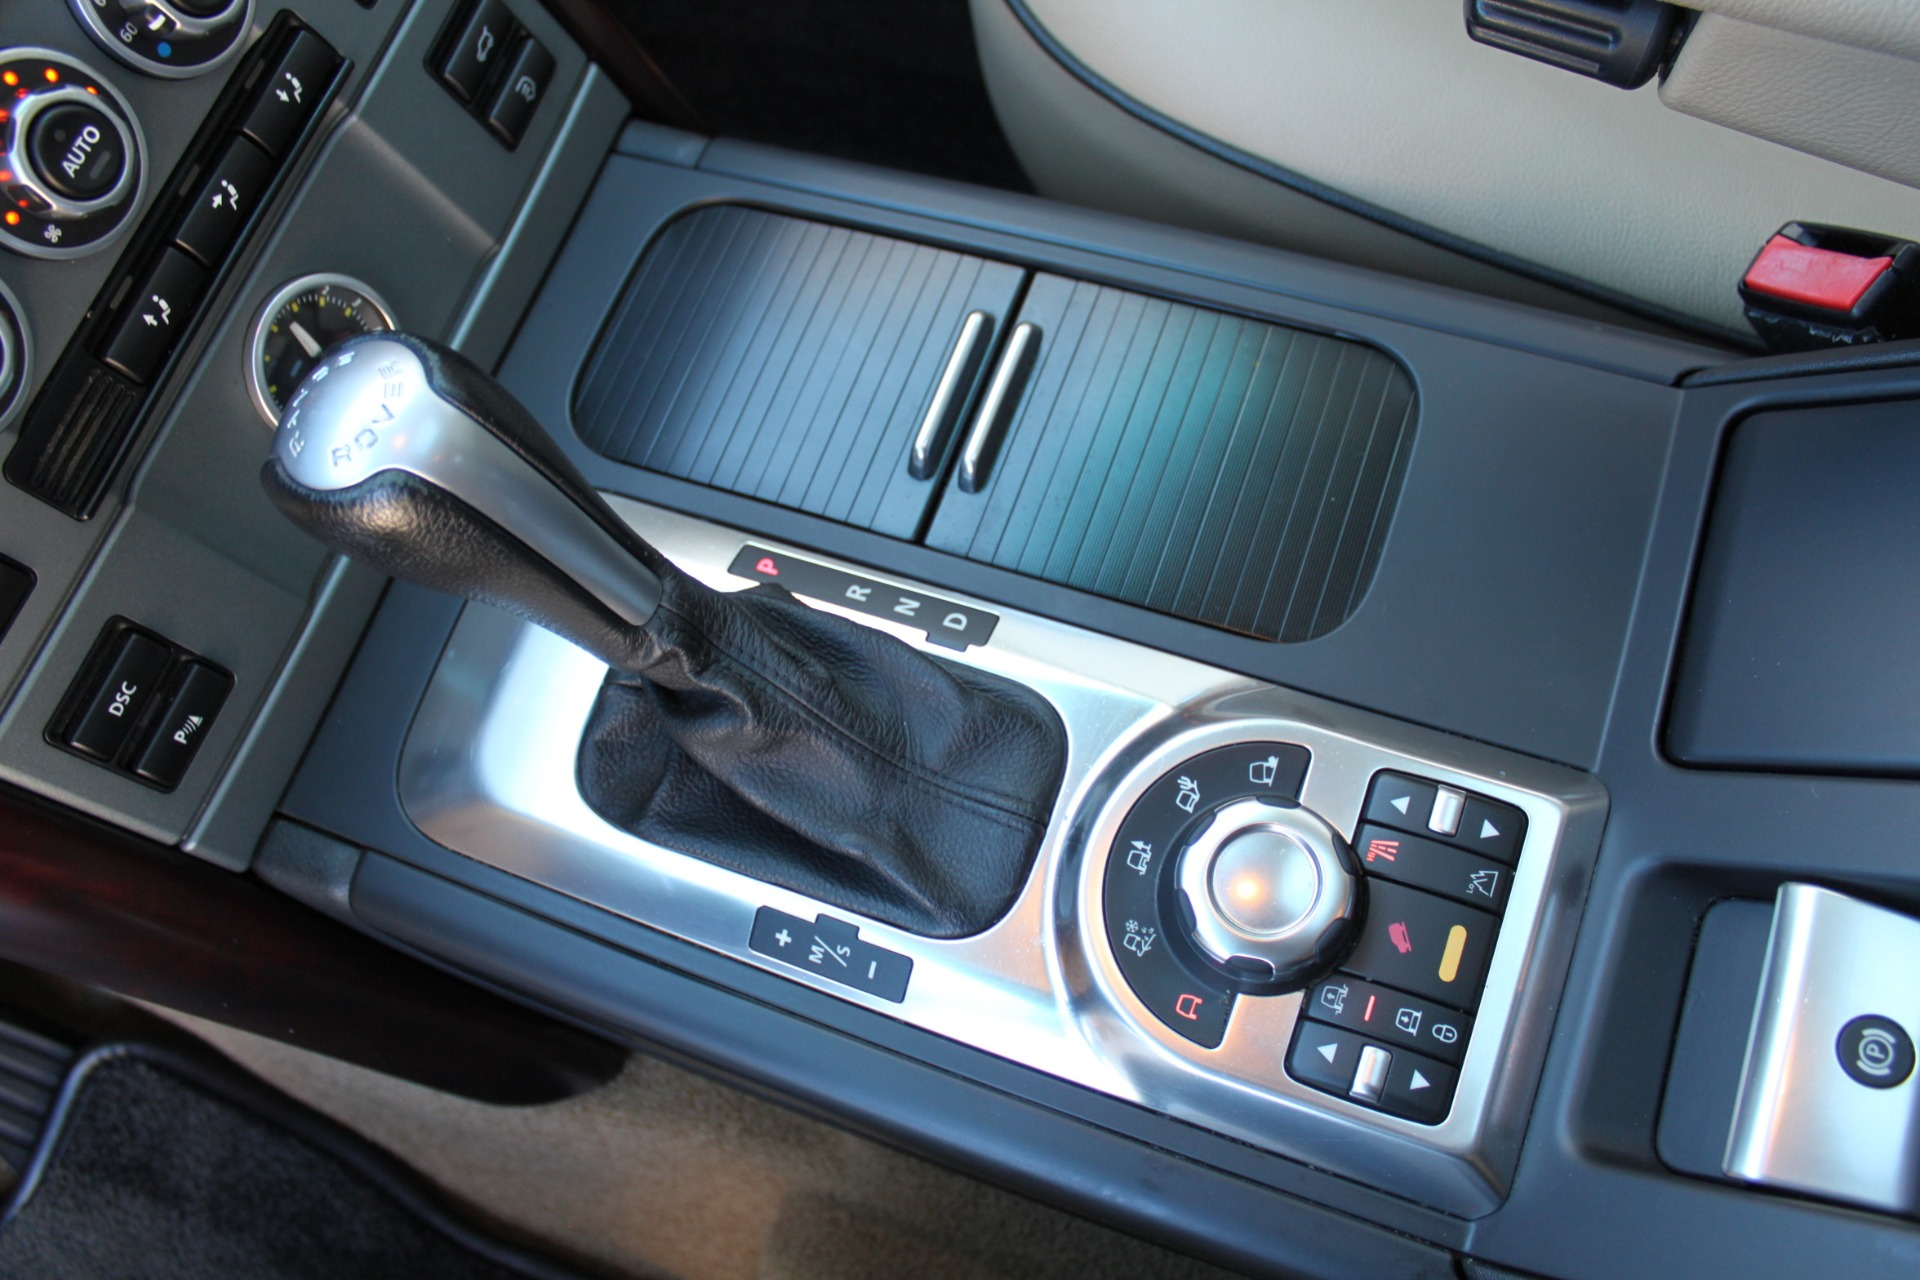 Used-2007-Land-Rover-Range-Rover-HSE-vintage